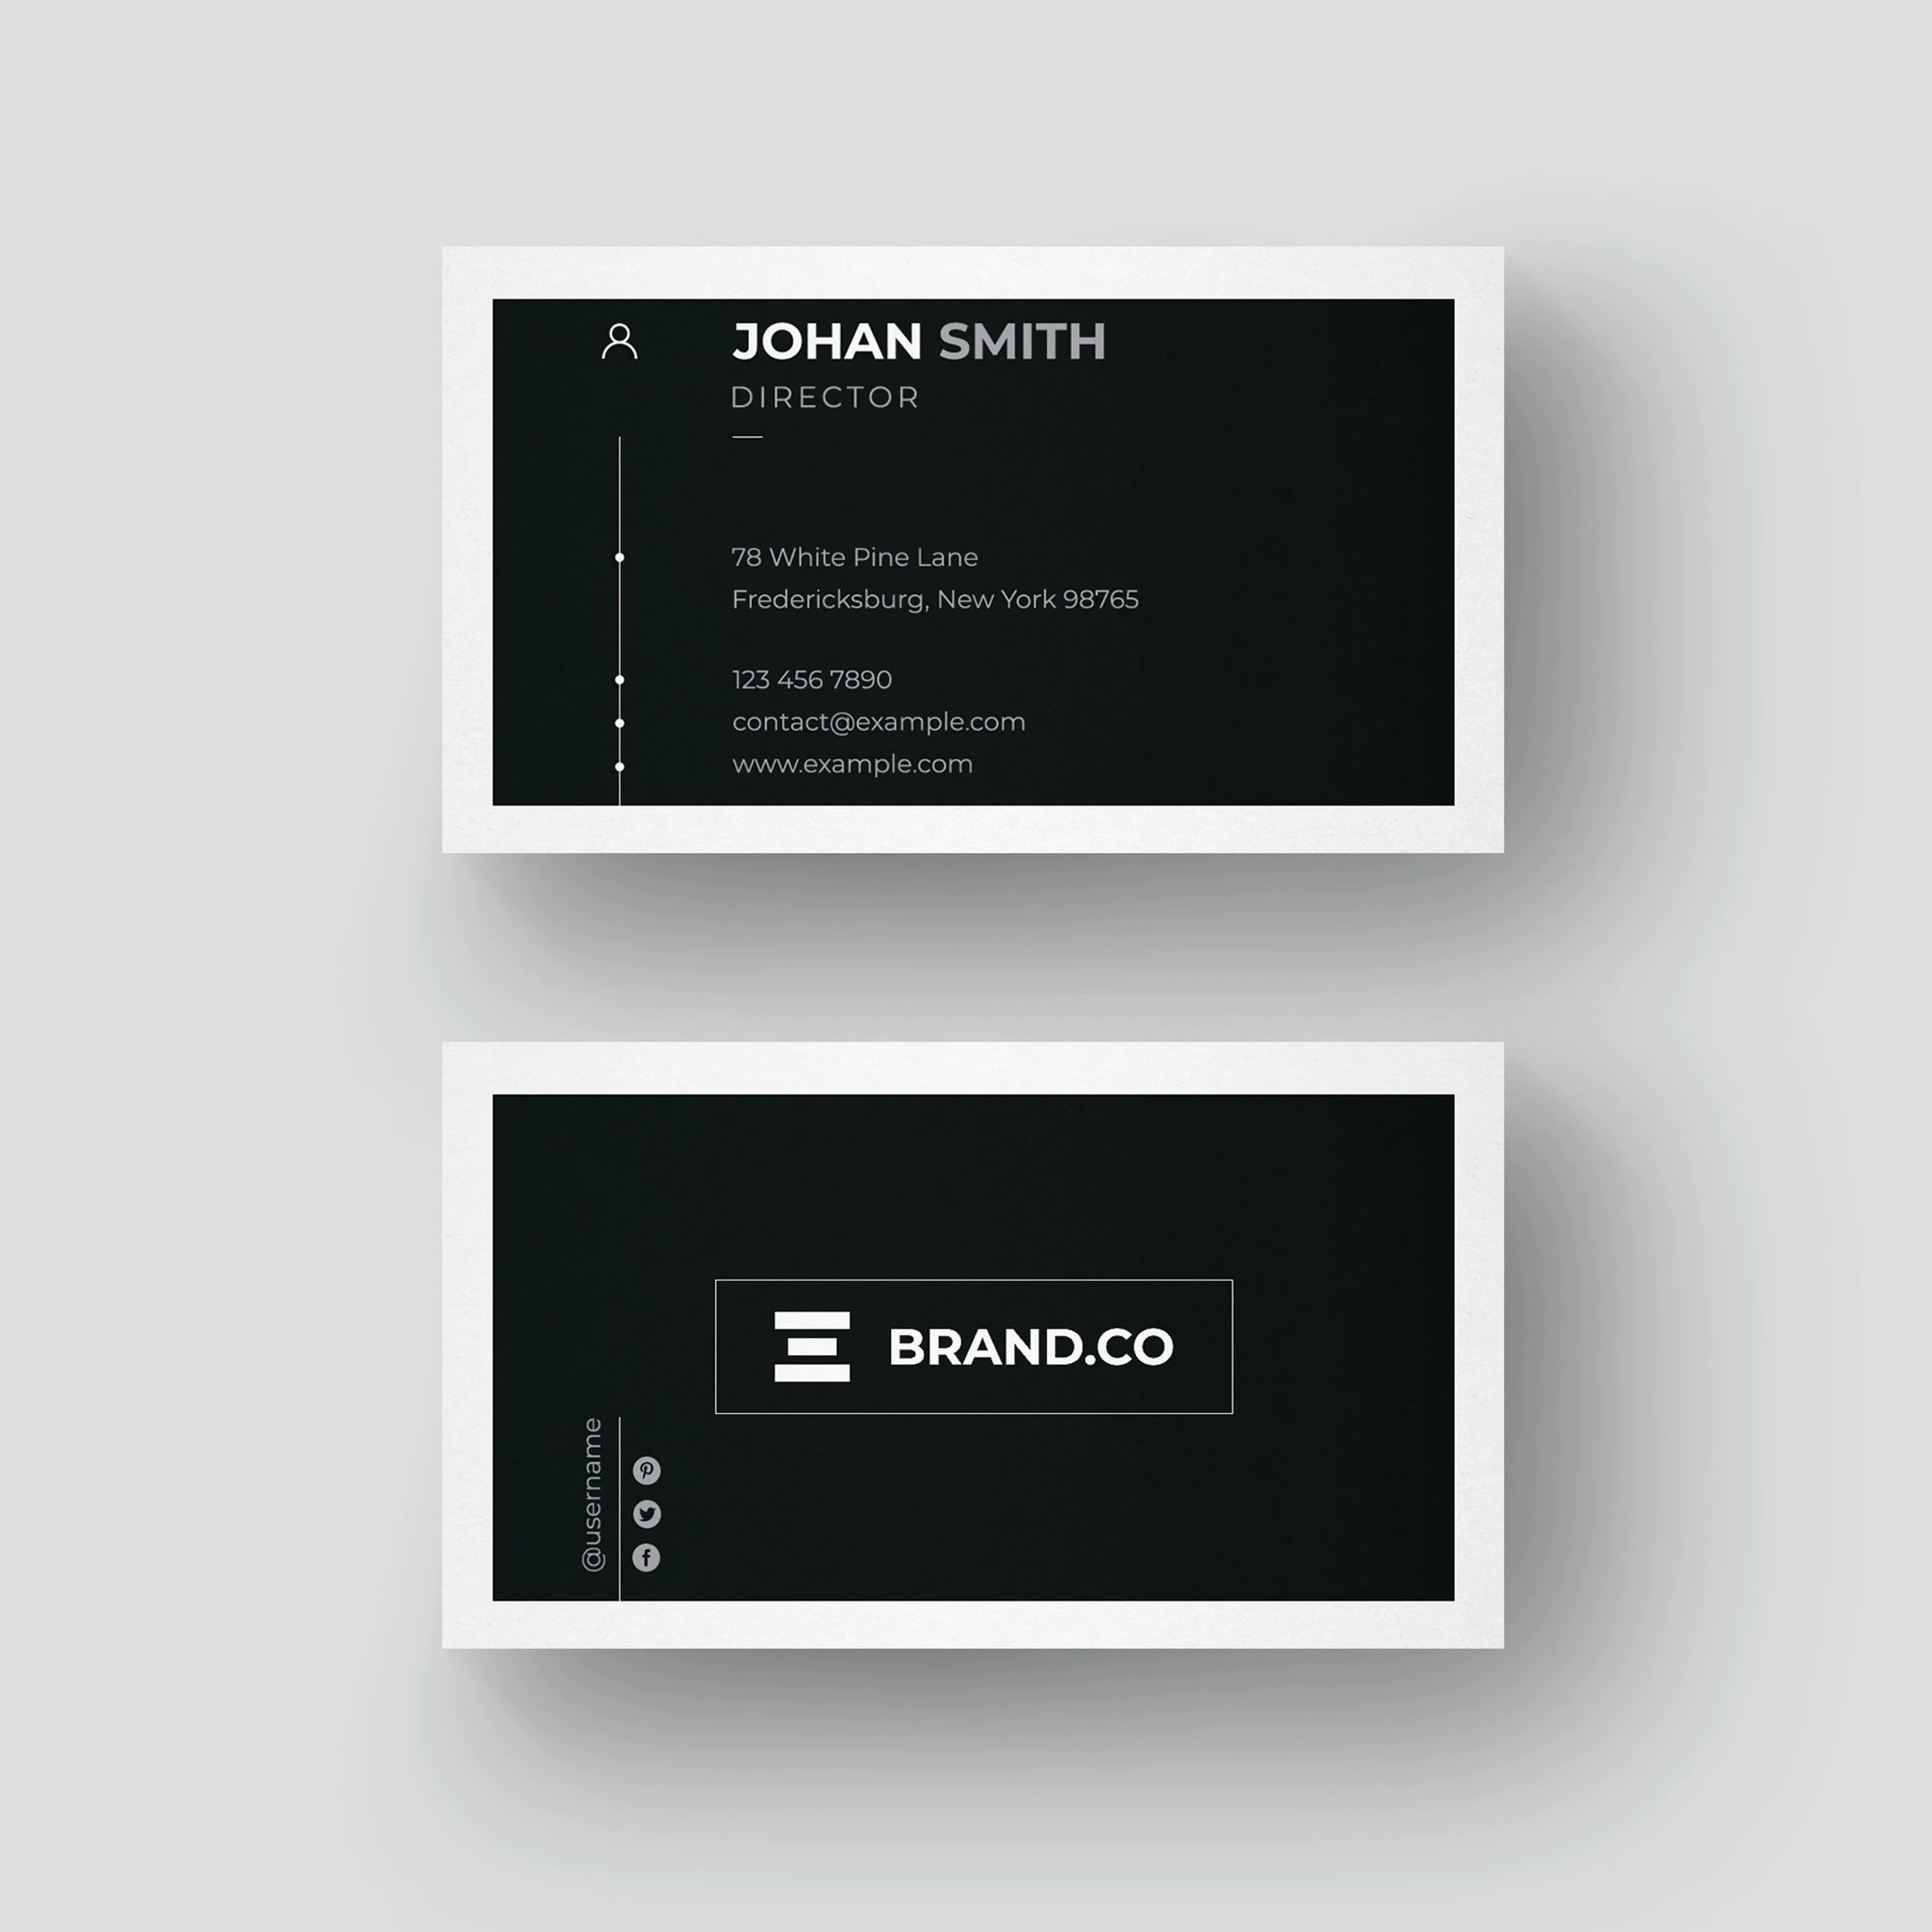 Minimalist Business Card Design Clean and Professional Etsy